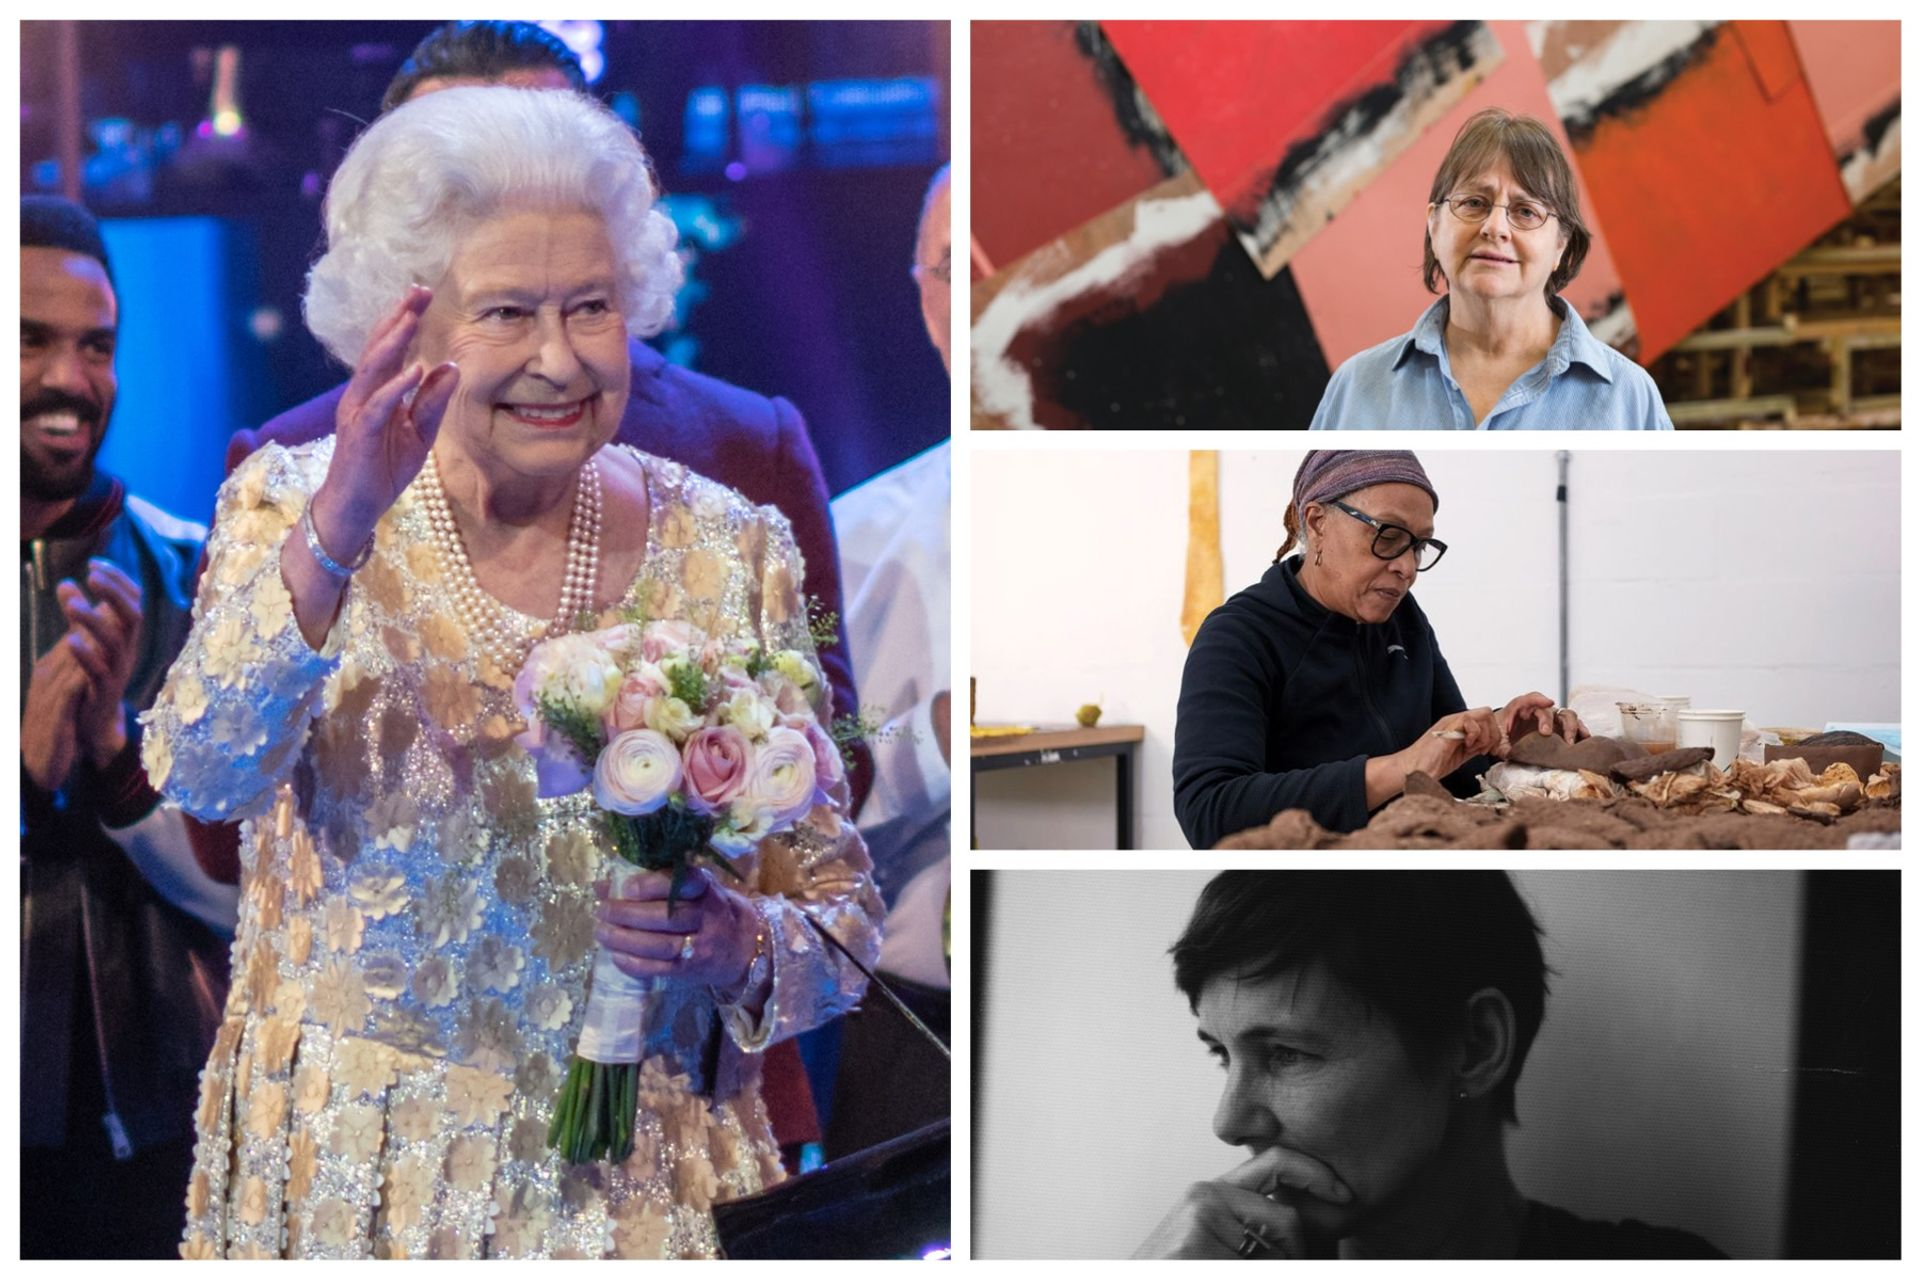 Several people from the art world were given awards as part of the Queen's birthday honours, including Phyllida Barlow (top), Veronica Ryan (middle) and Sadie Coles (bottom) Queen: Ralph_PH; Barlow: David Levene; Ryan: Max McClure; Coles: Sadie Coles, courtesy Sadie Coles HQ